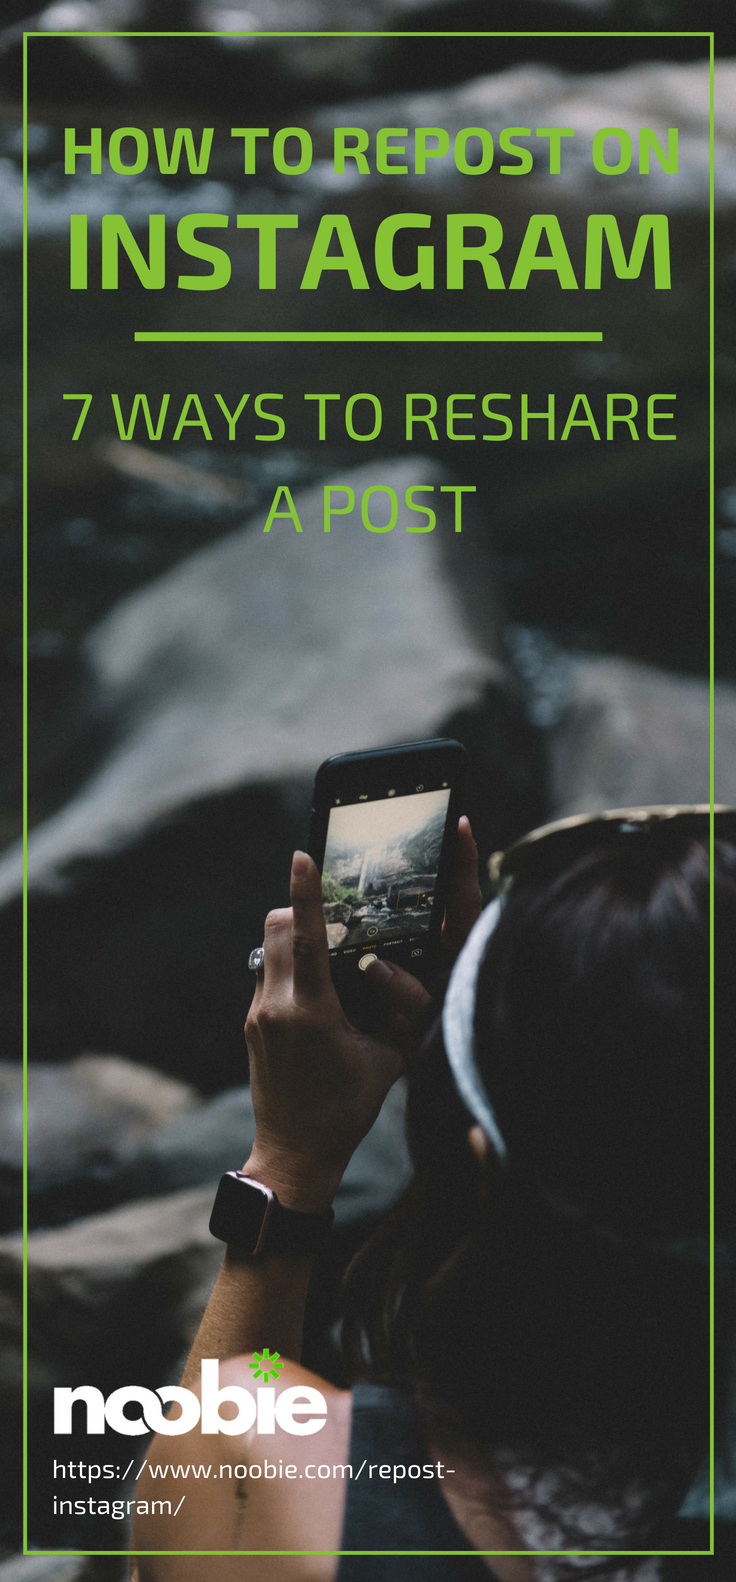 How To Repost On Instagram Easy Ways To Reshare A Post